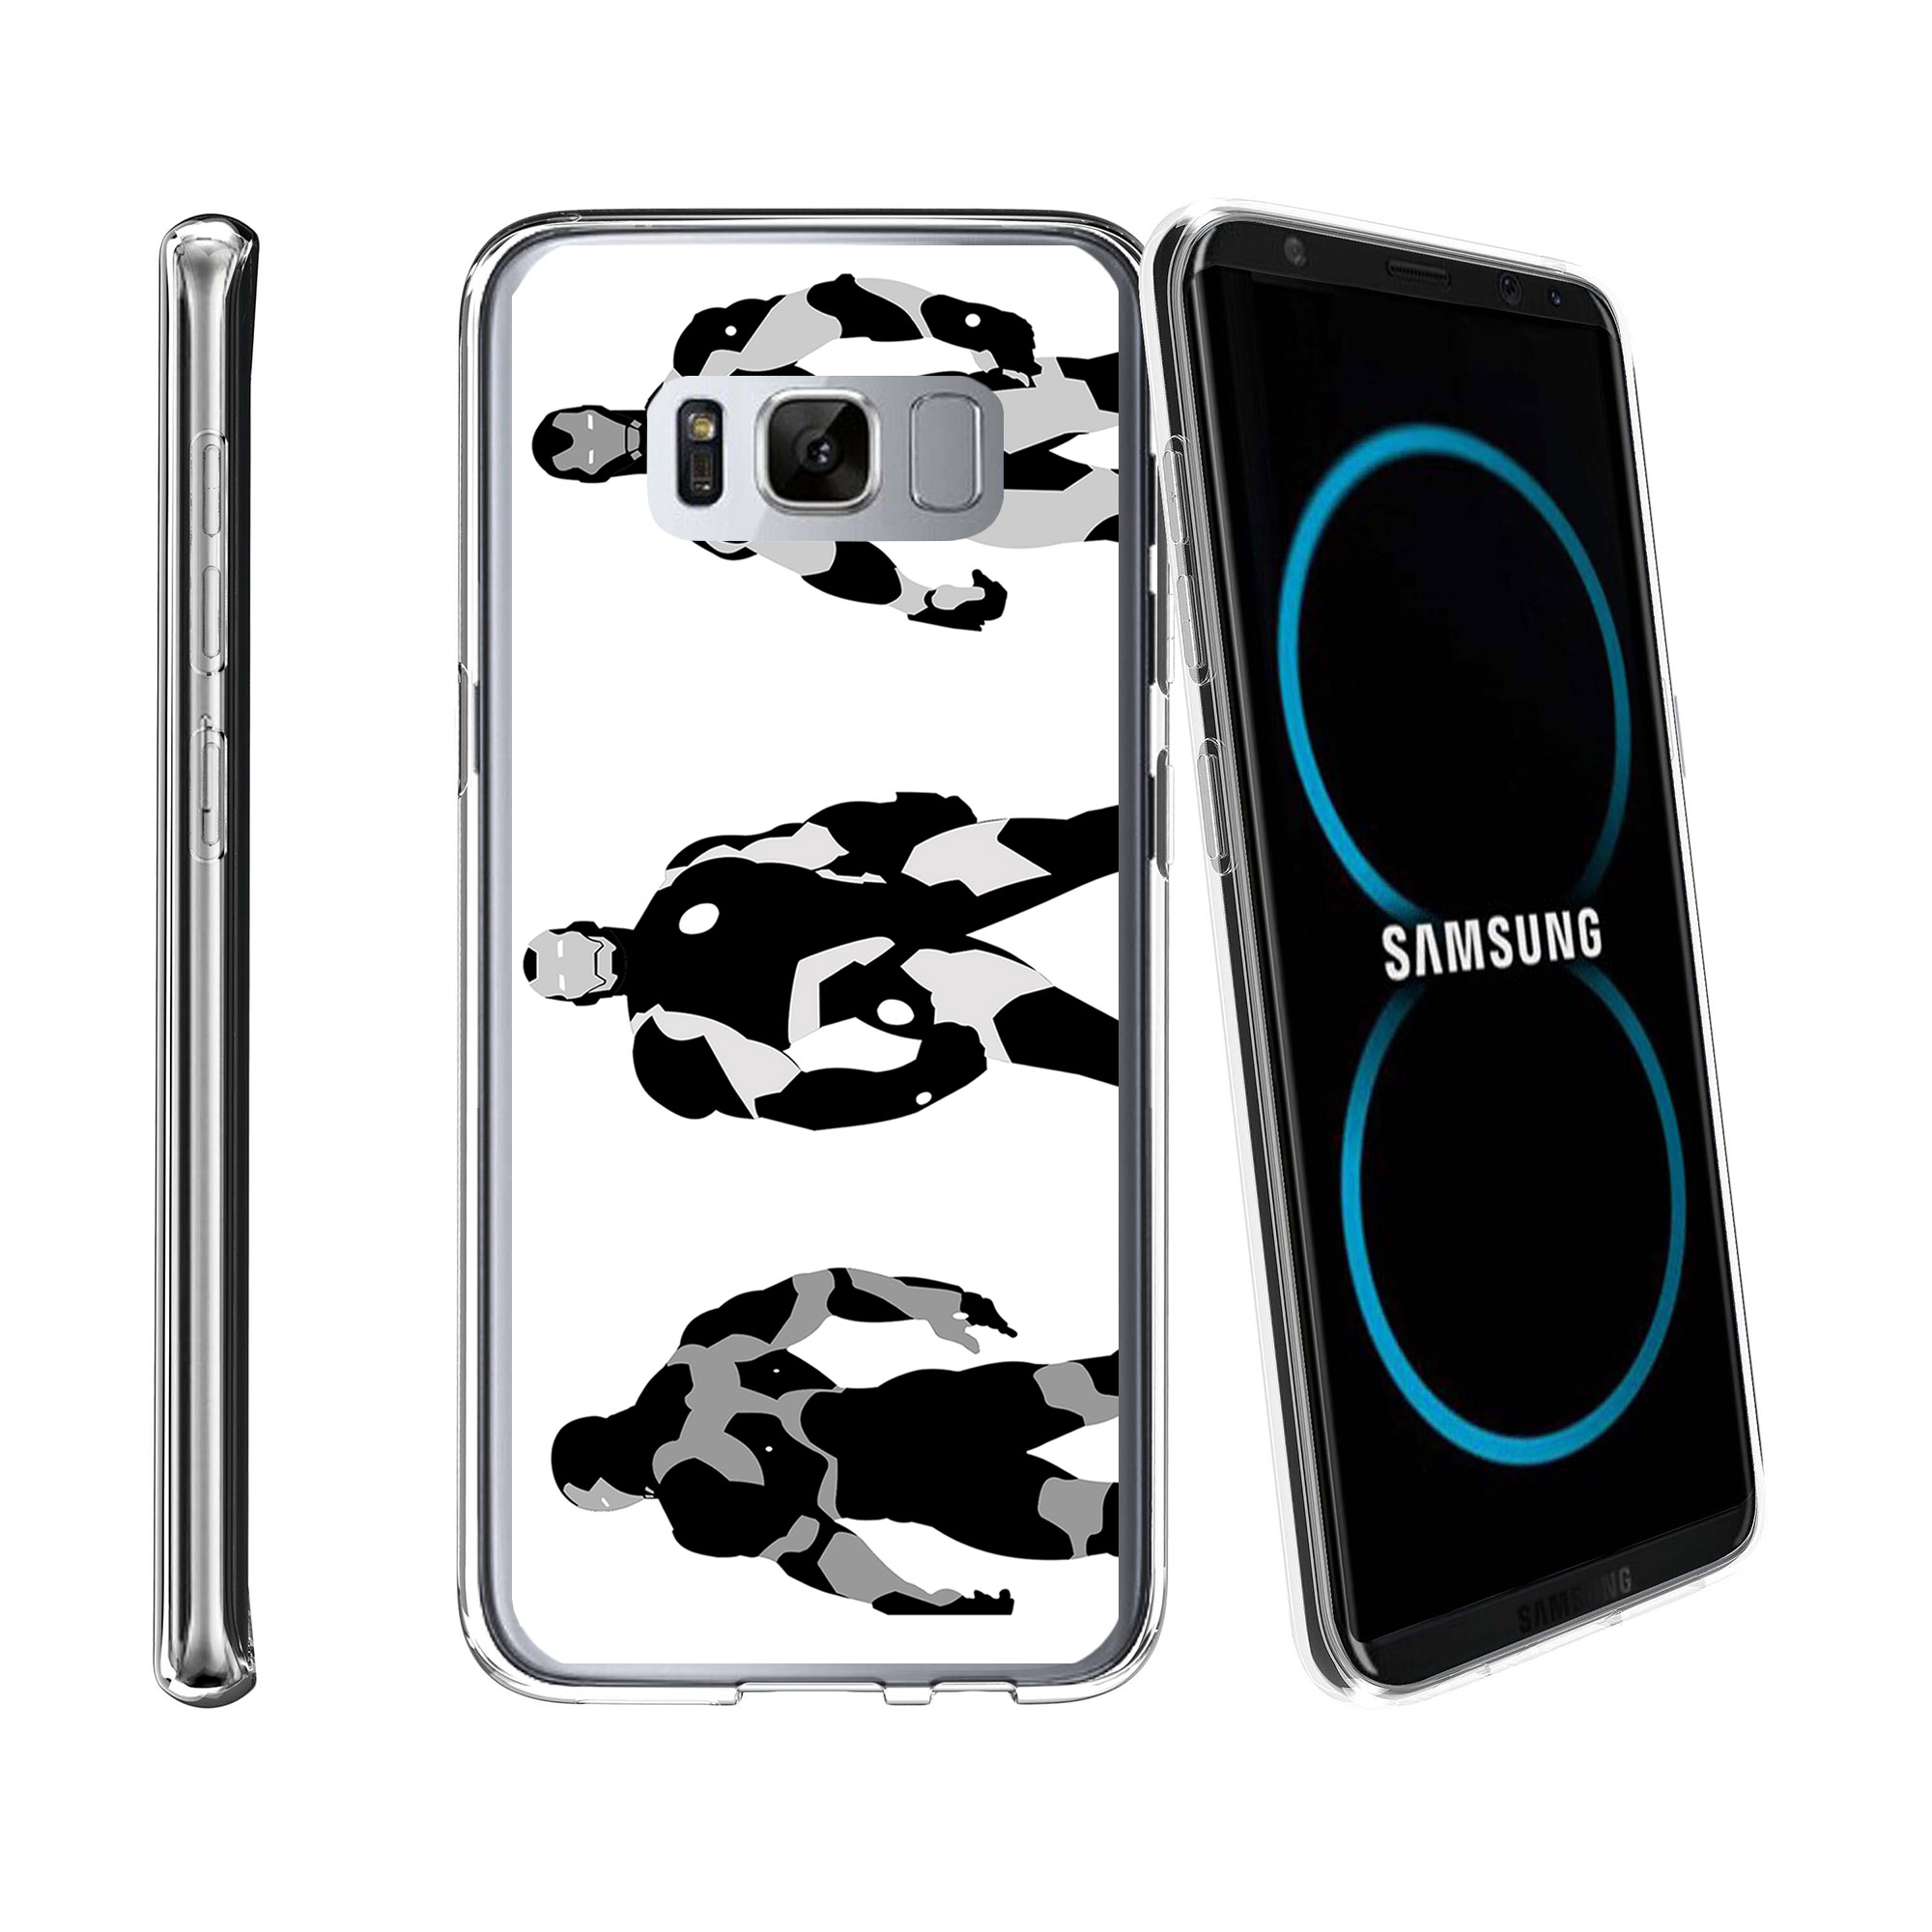 Case for Samsung Galaxy S8 Plus | Galaxy S8 Plus Transparent Silicone Case [ Flex Force ] Flexible Clear Case Comic Collection